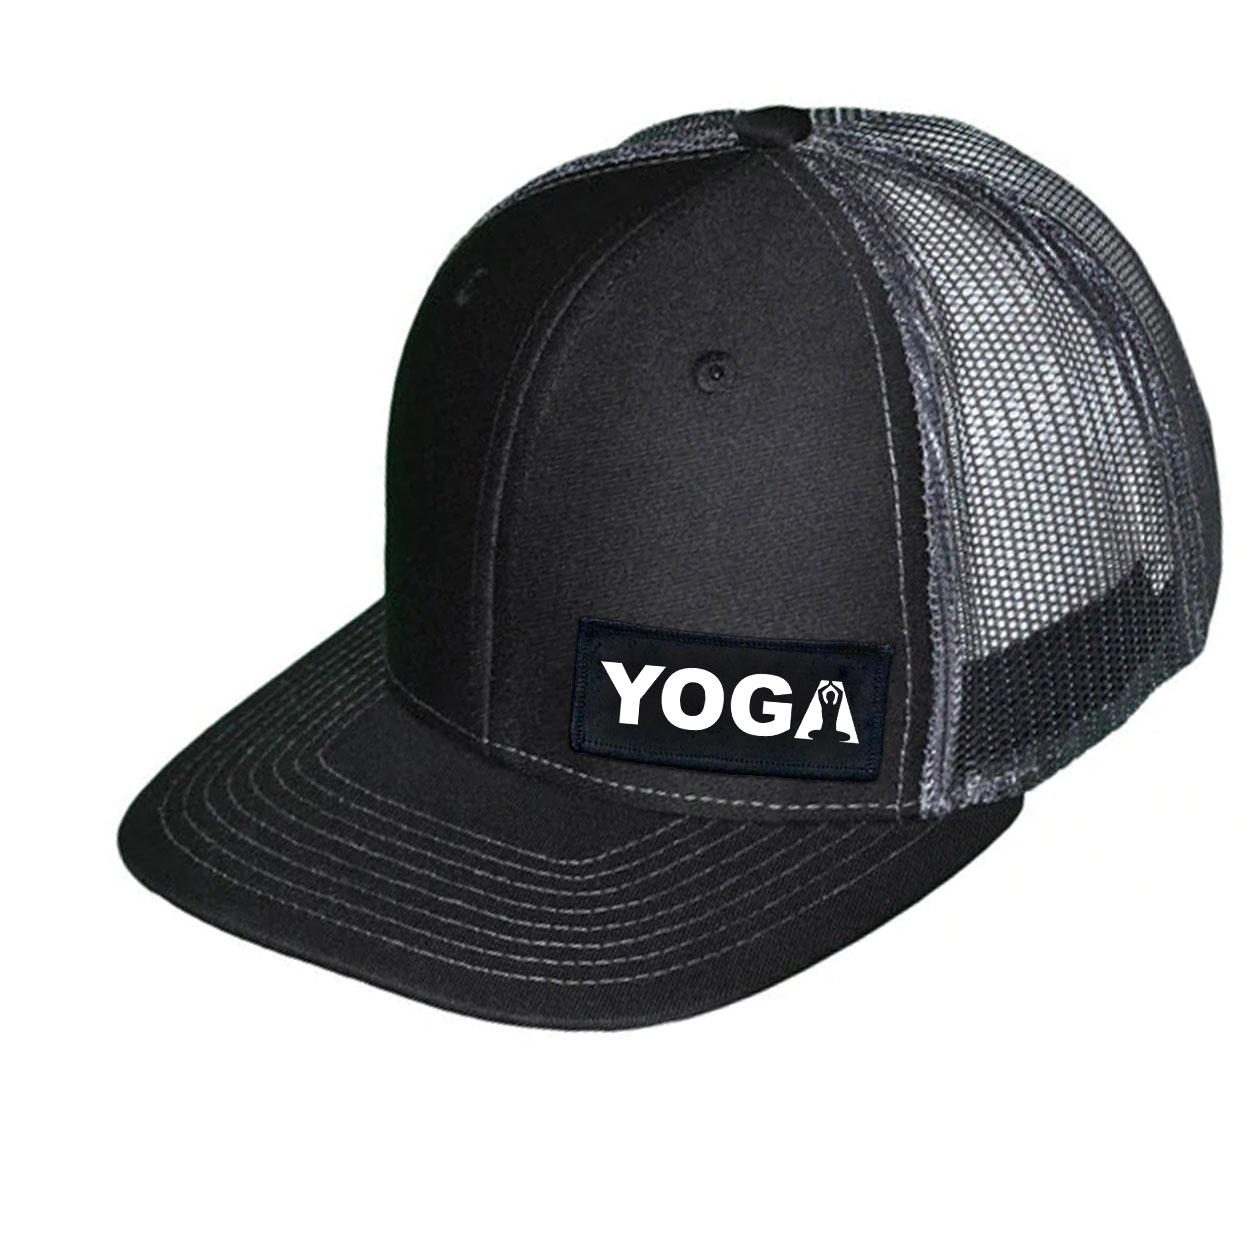 Yoga Meditation Logo Night Out Woven Patch Snapback Trucker Hat Black/Dark Gray (White Logo)